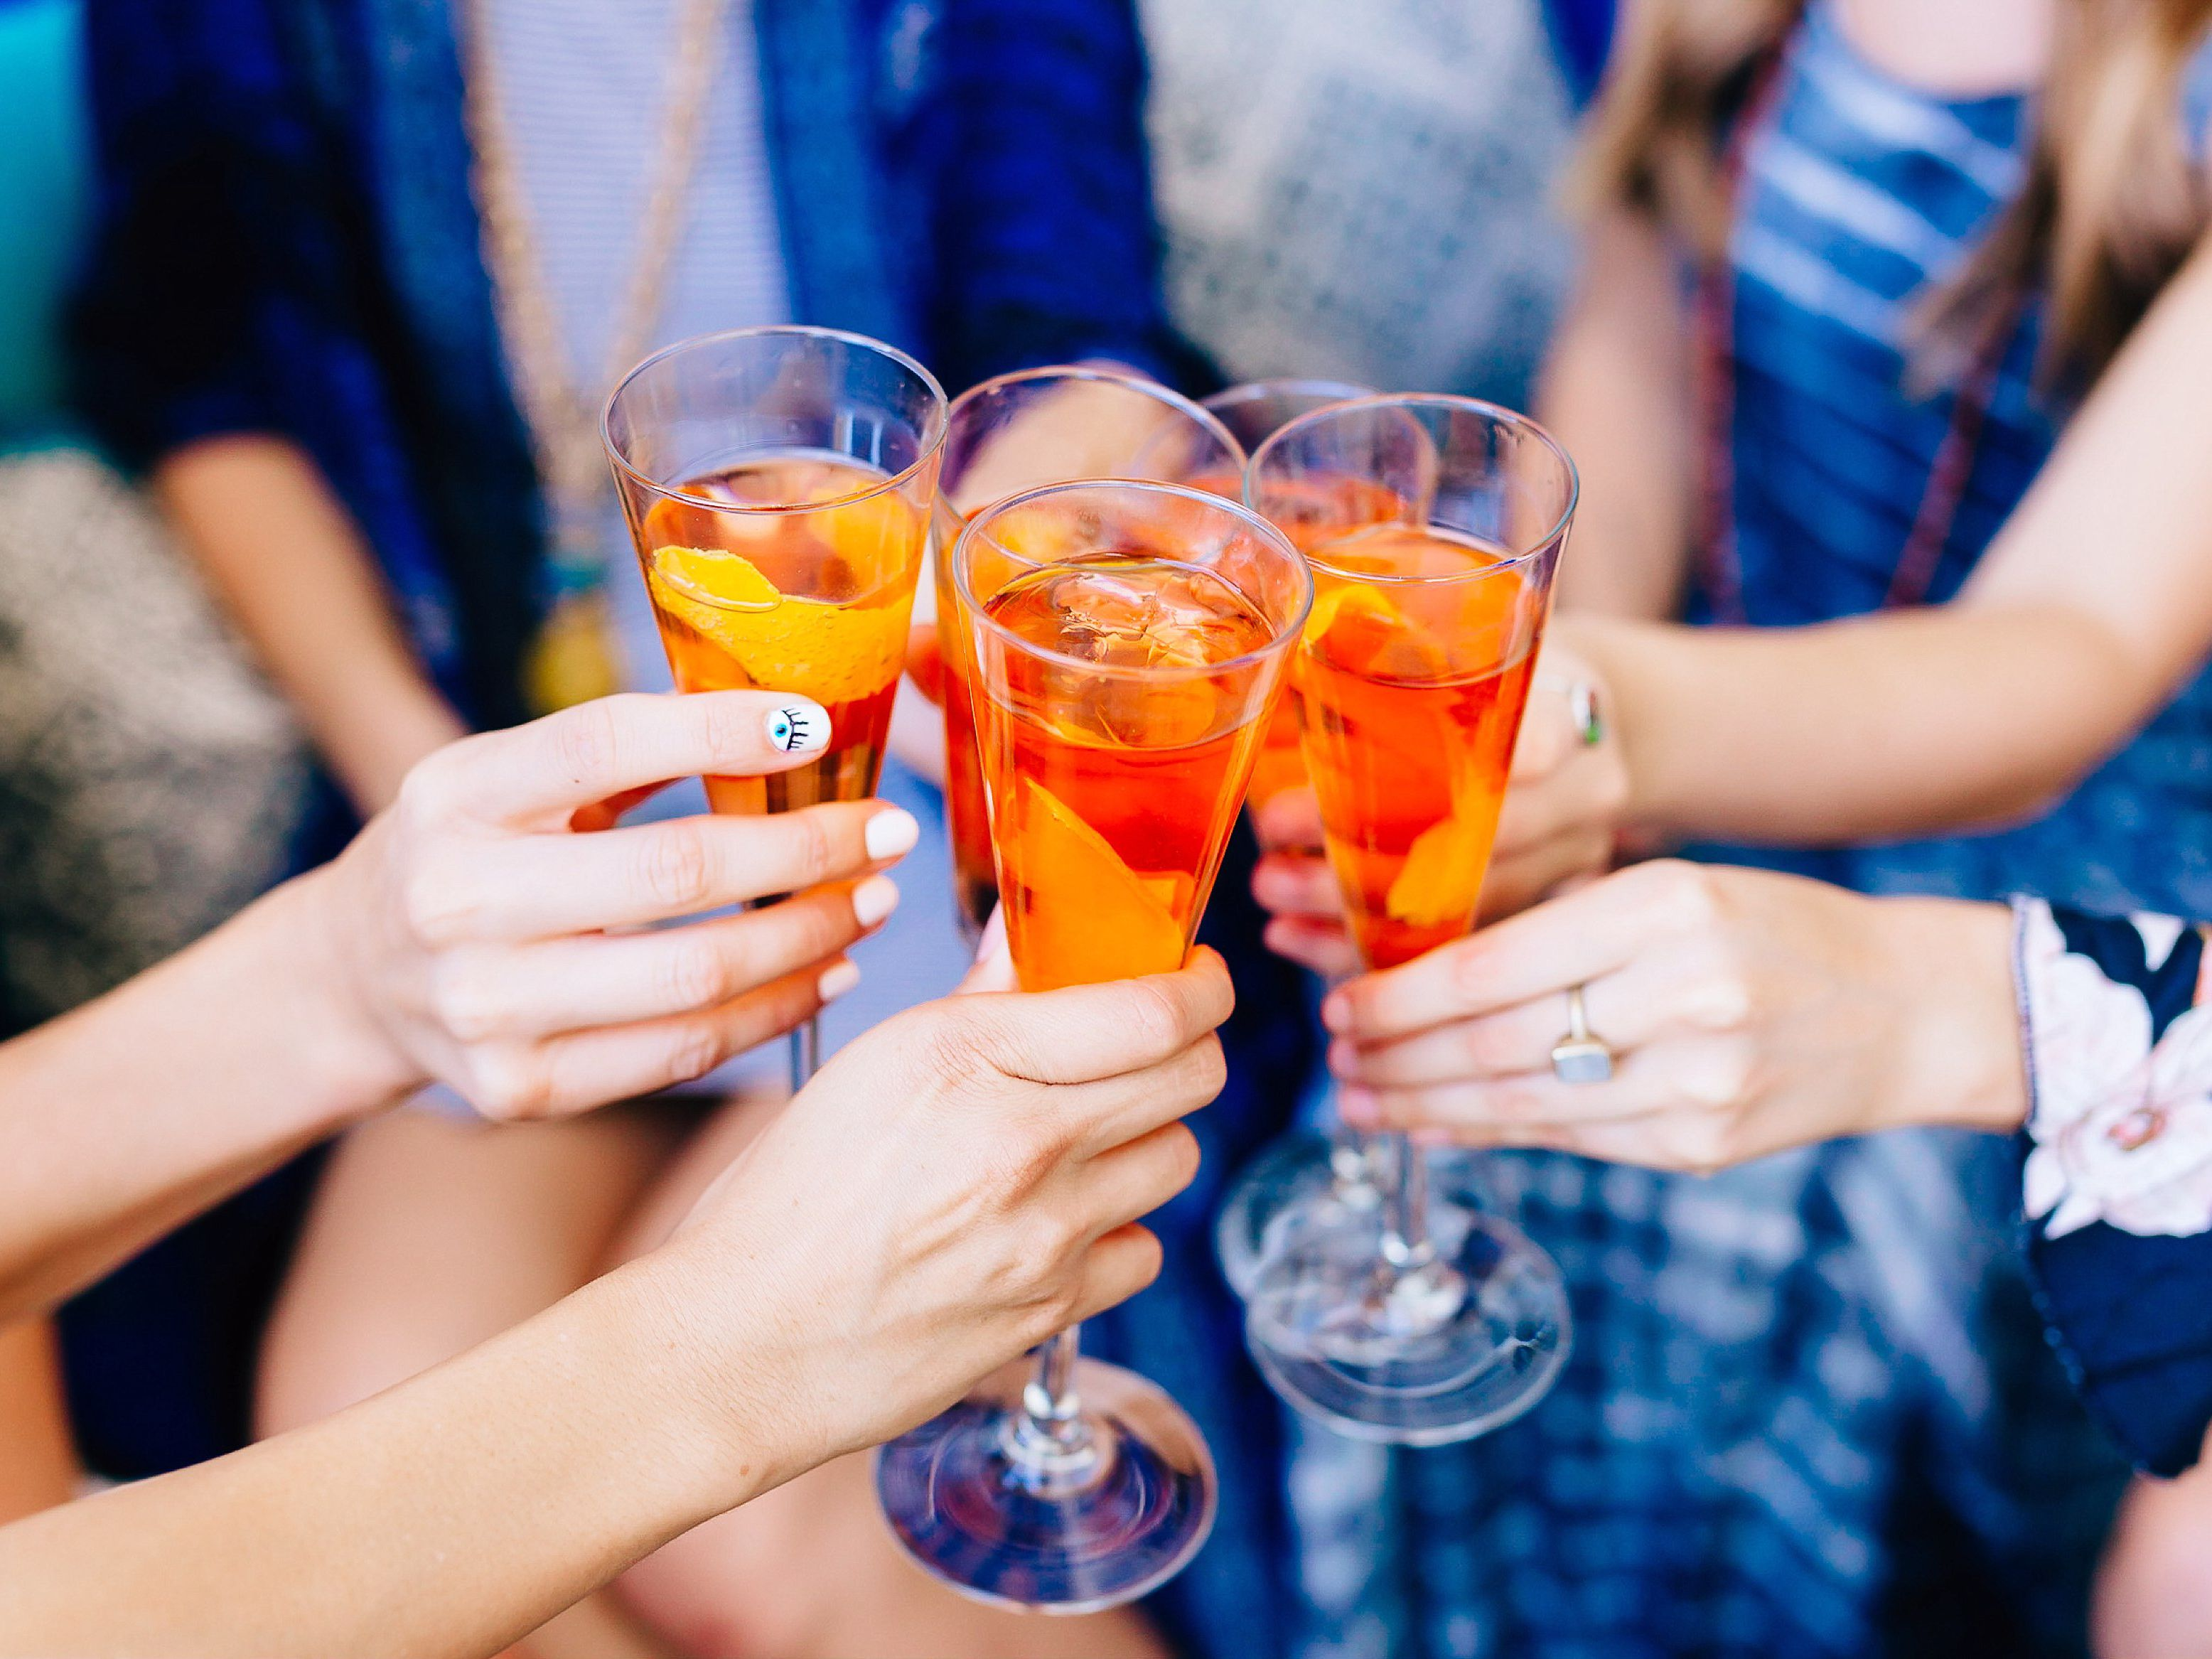 Bachelorette Party Alert: This Is Why Everyone's Heading to